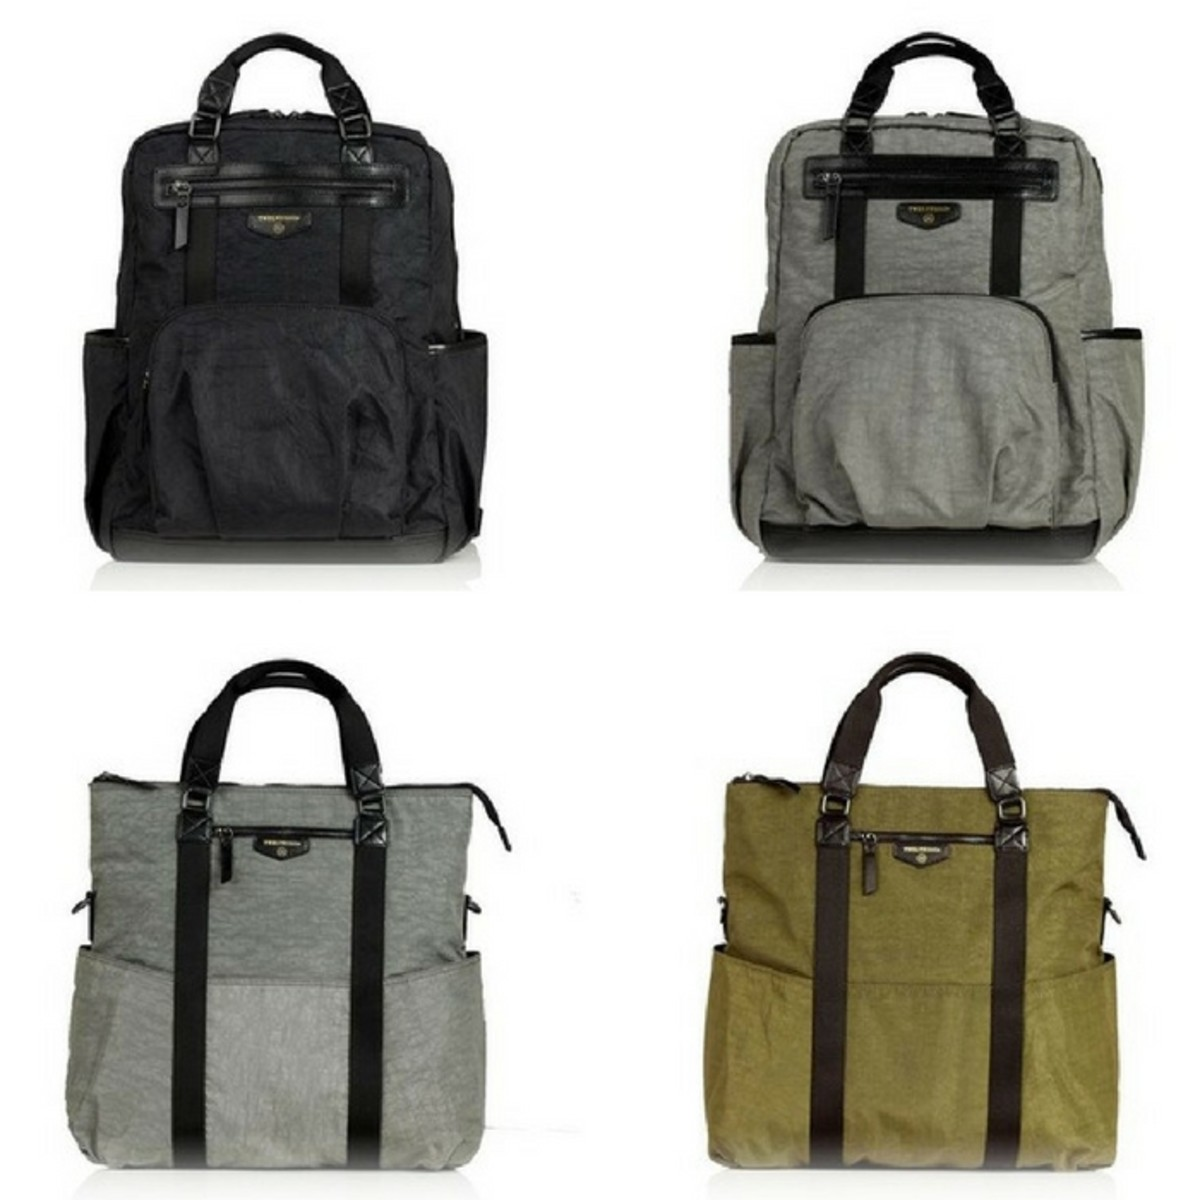 TwelveLittle Unisex Diaper Bag Collection